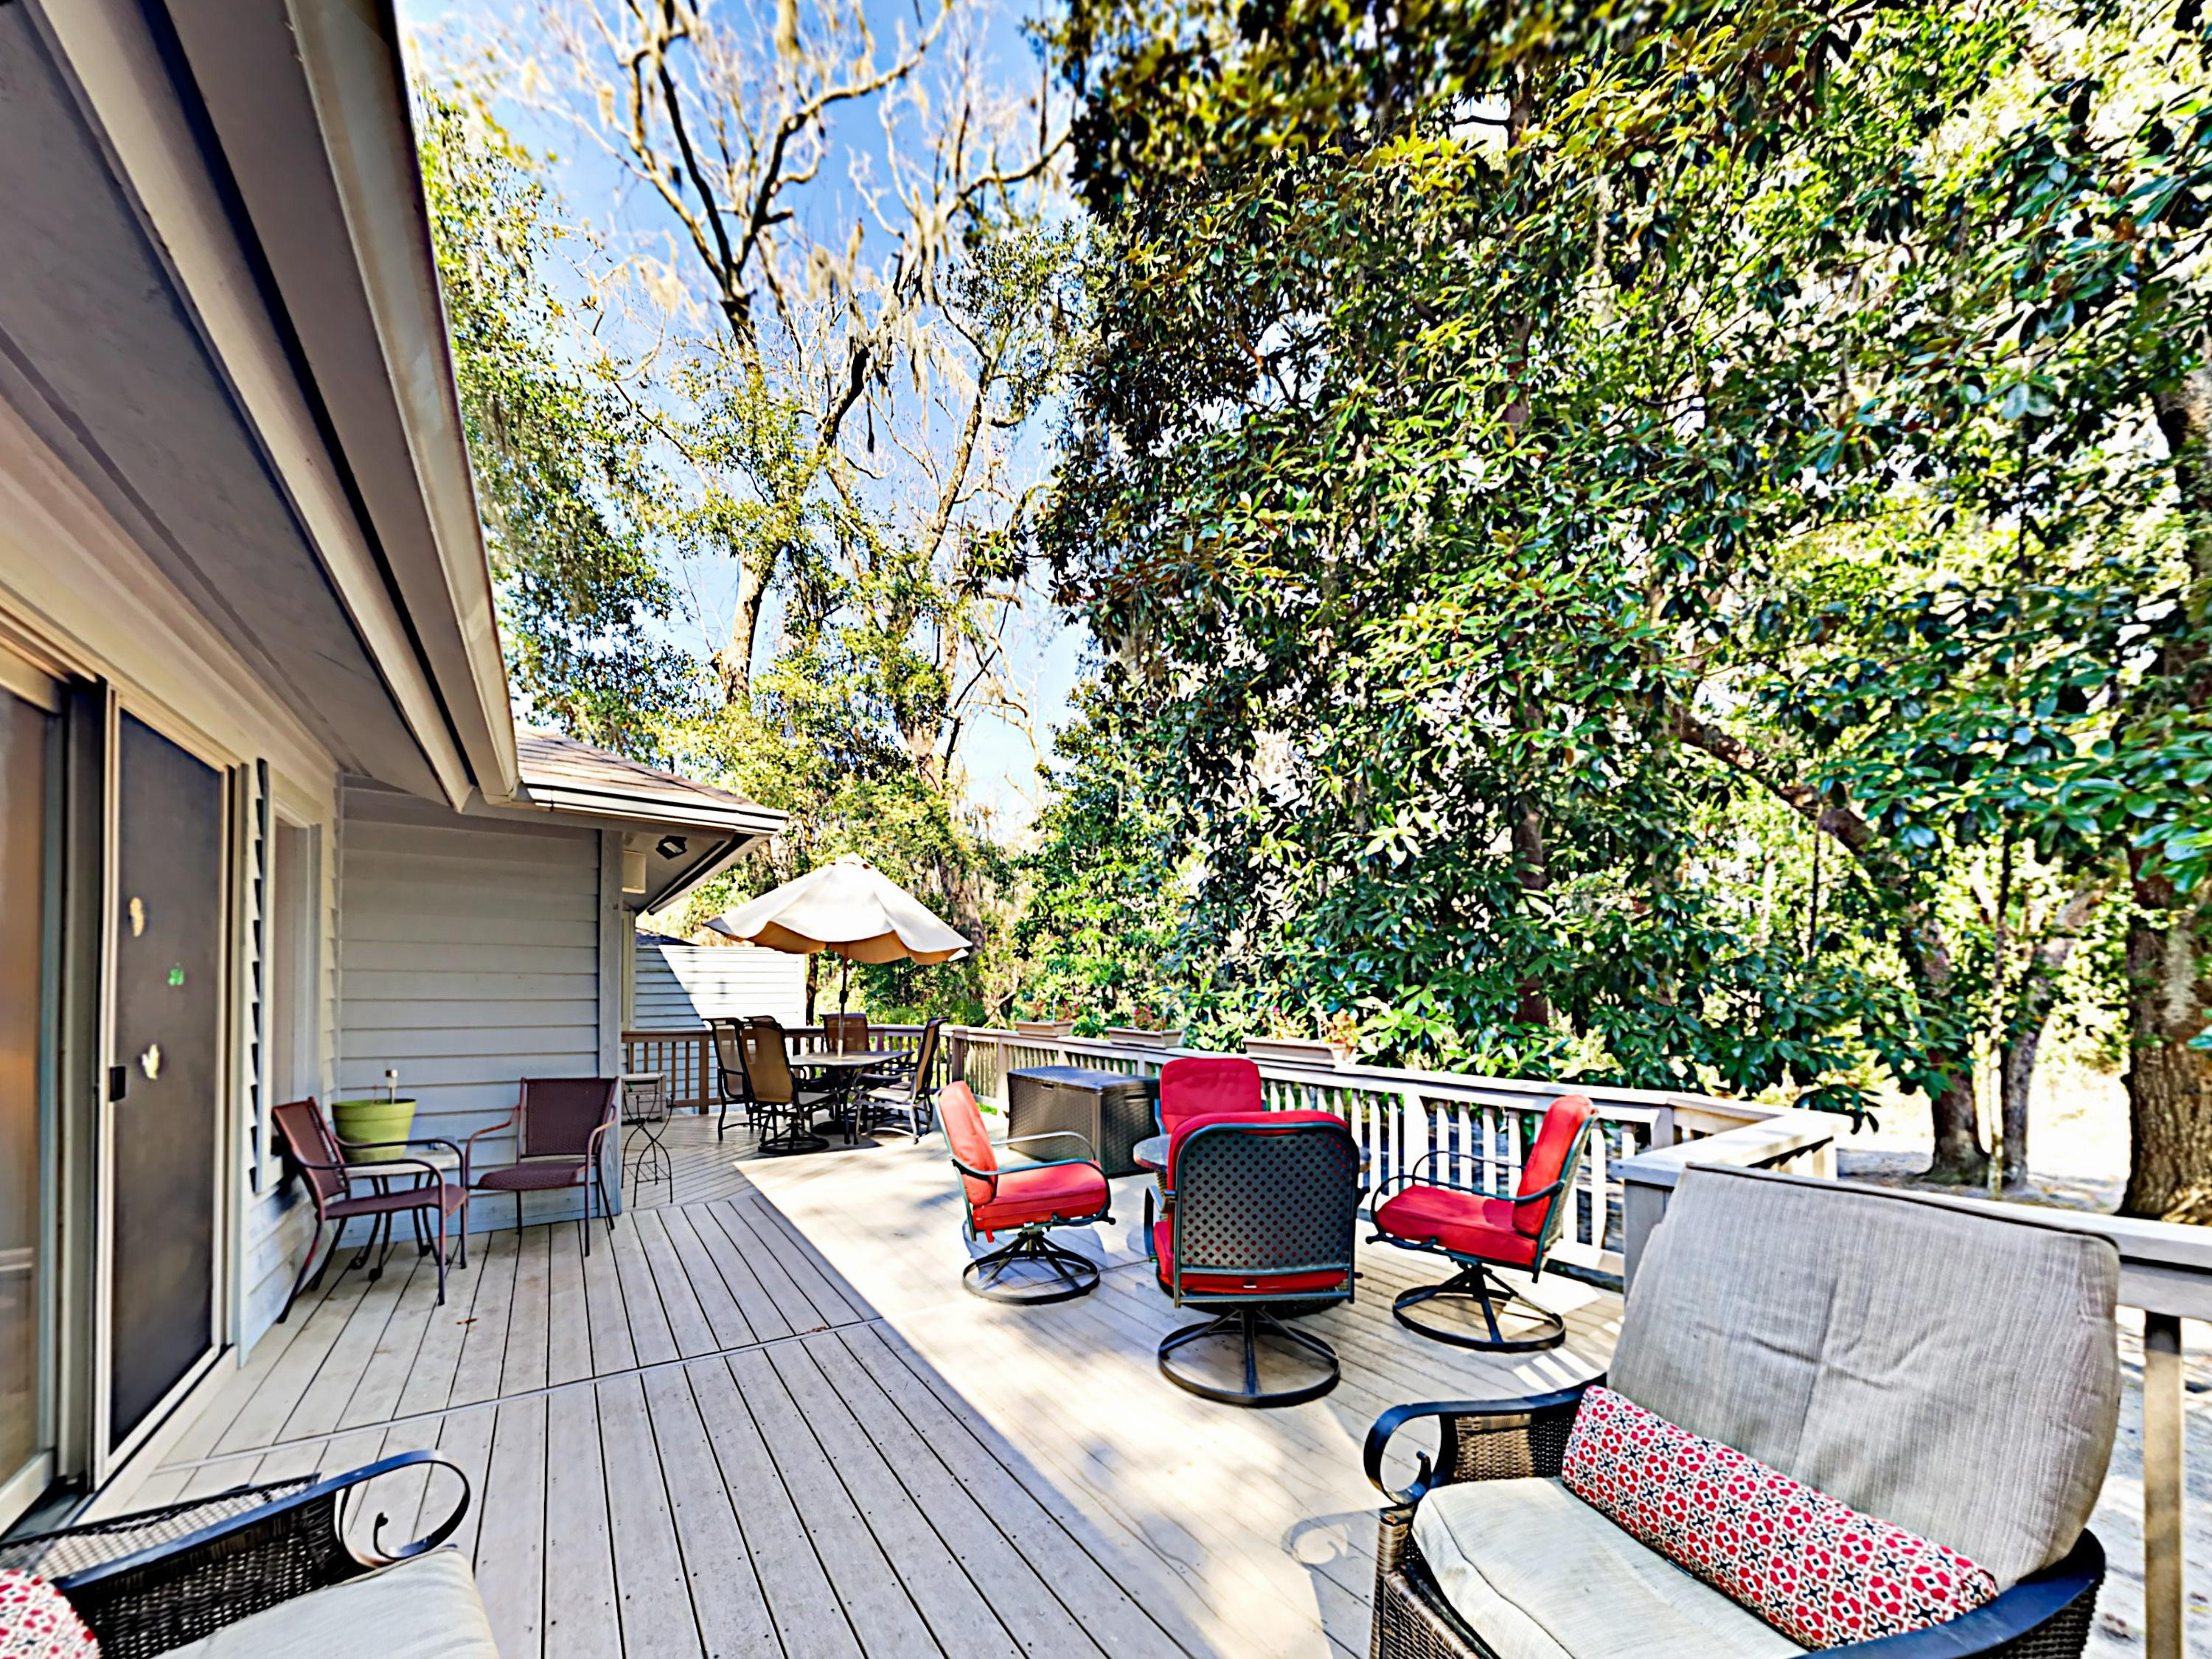 The spacious, tree-lined deck has plenty of seating.